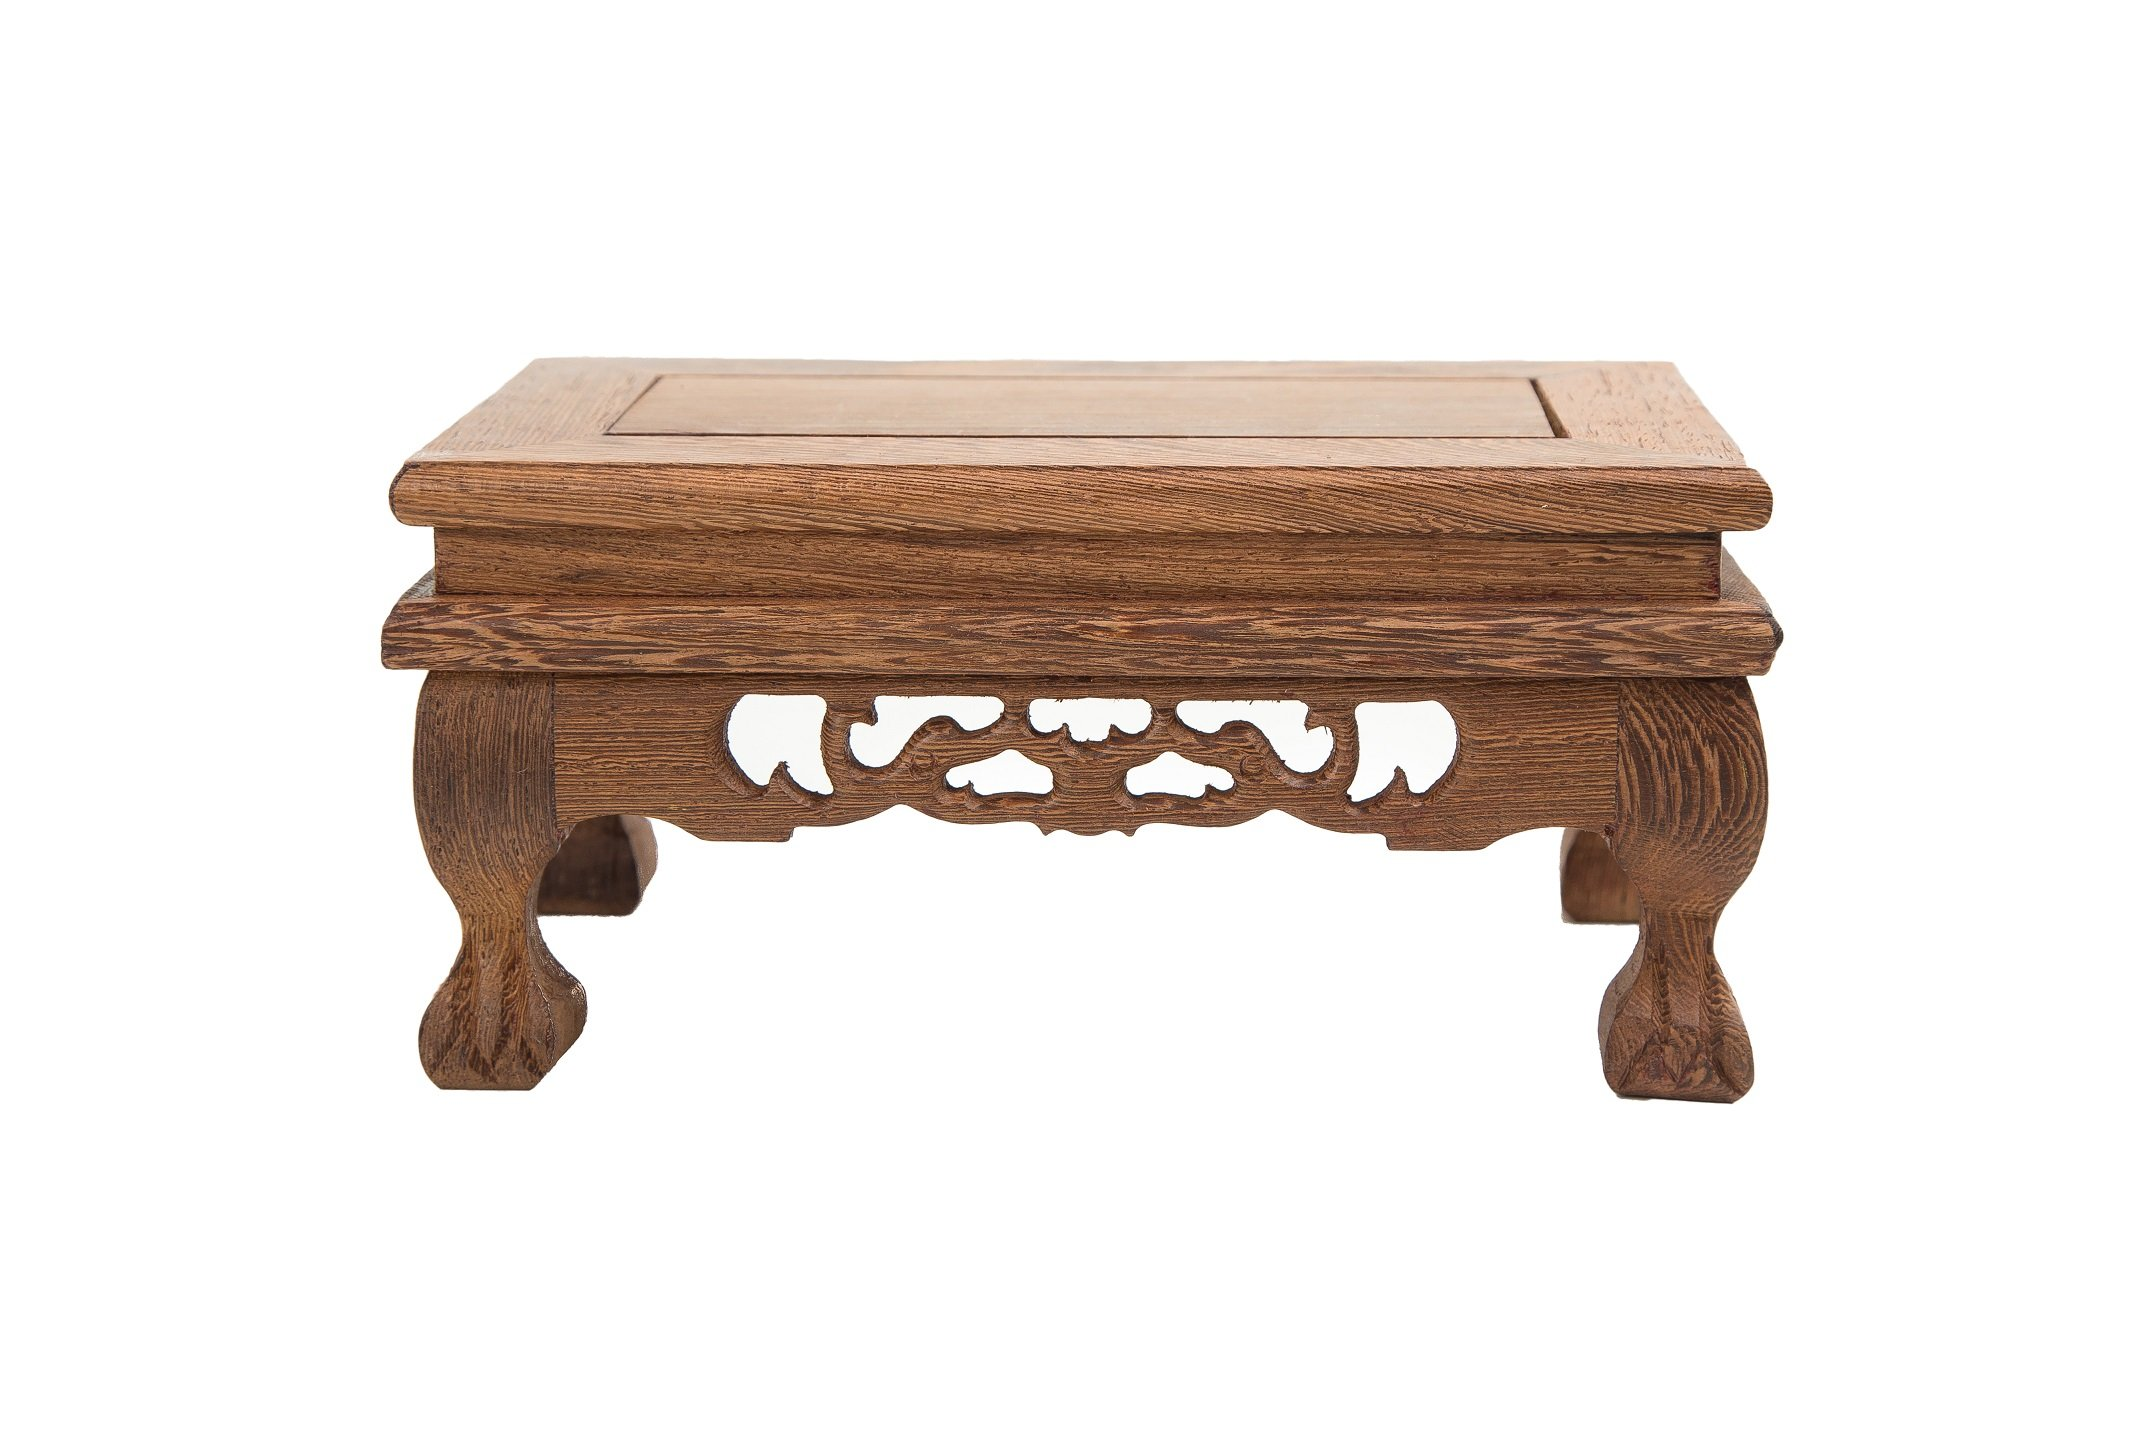 LuoLuo Chinese Display Stand Wooden Rectangle Shape Tiger Feet Carved Solid Rosewood JiChi Wood Display Base Holder For Arts Antique Etc, Home Decoration (S 18.5cm11cm9cm) by LuoLuo (Image #4)